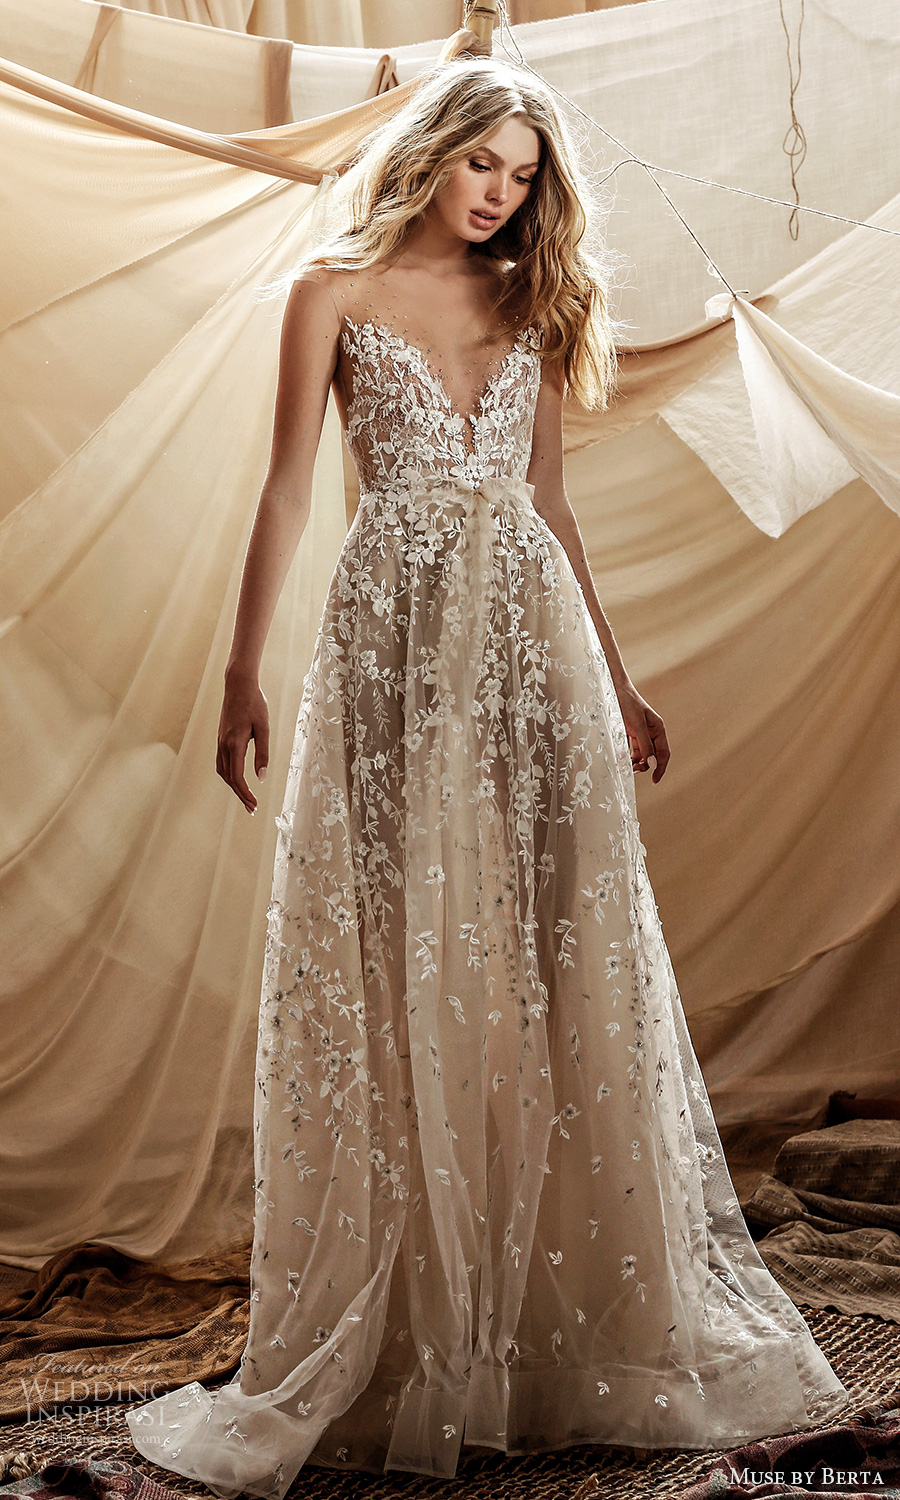 muse by berta spring 2021 bridal sleeveless illusion straps plunging v neckline fully embellished lace a line ball gown wedding dress chapel train (2) mv